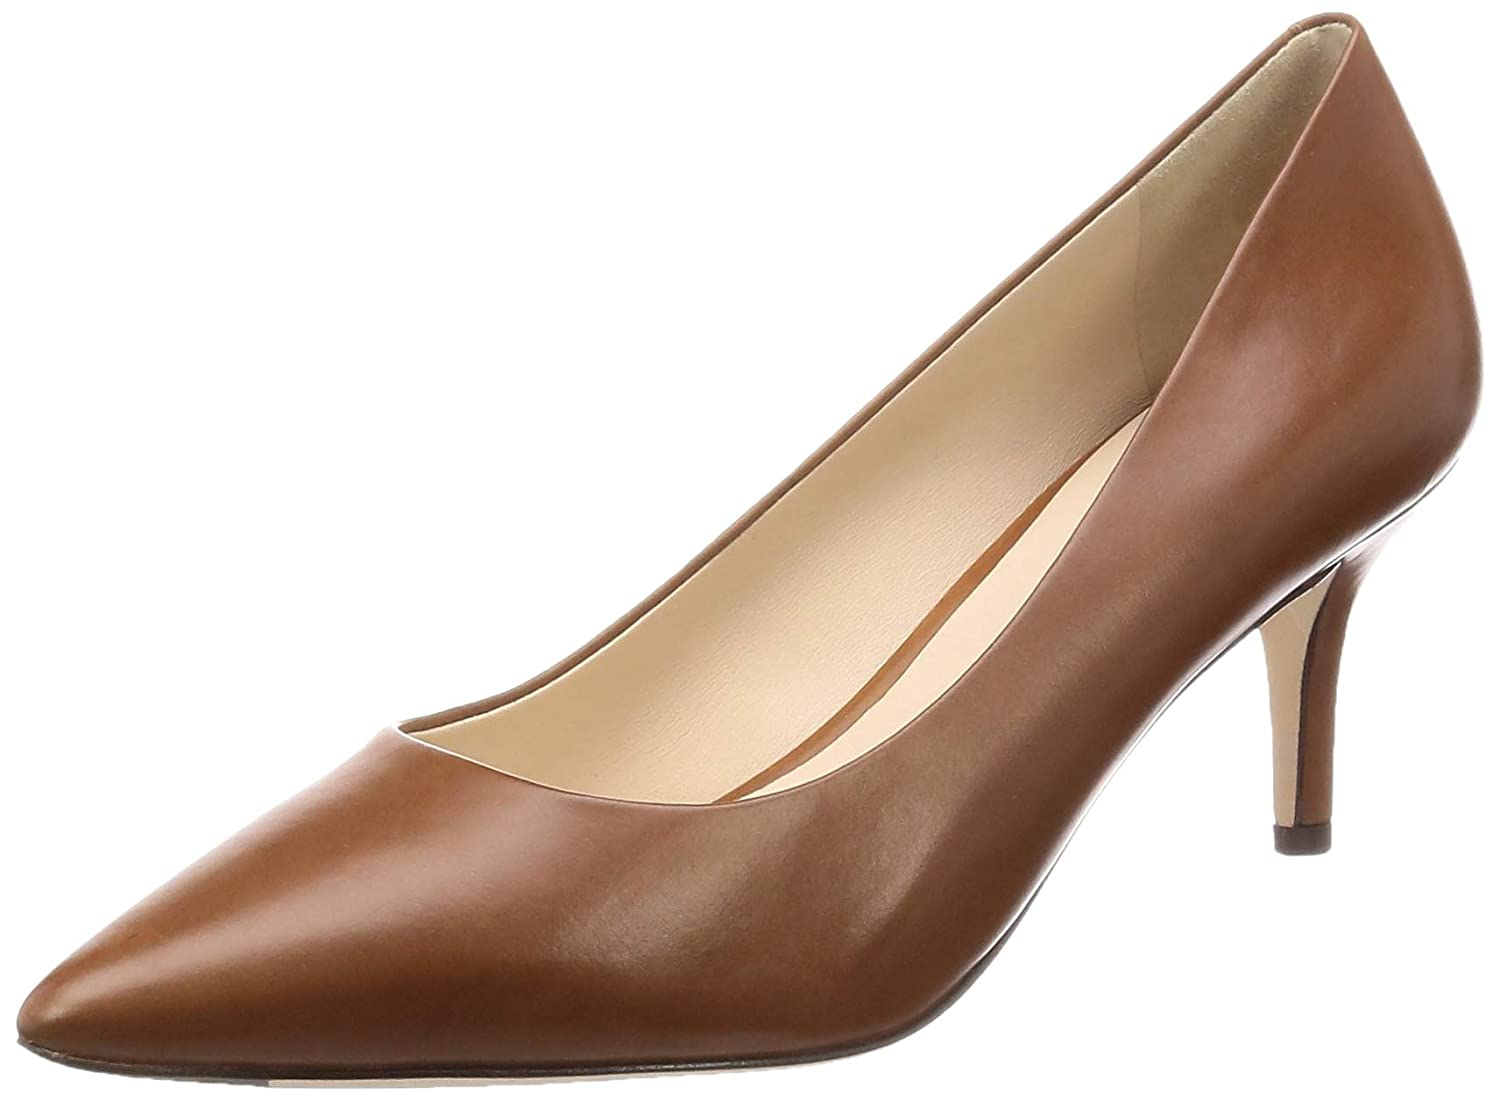 Woodbury Leather Cole Haan Womens Vesta Pump 65mm Pump